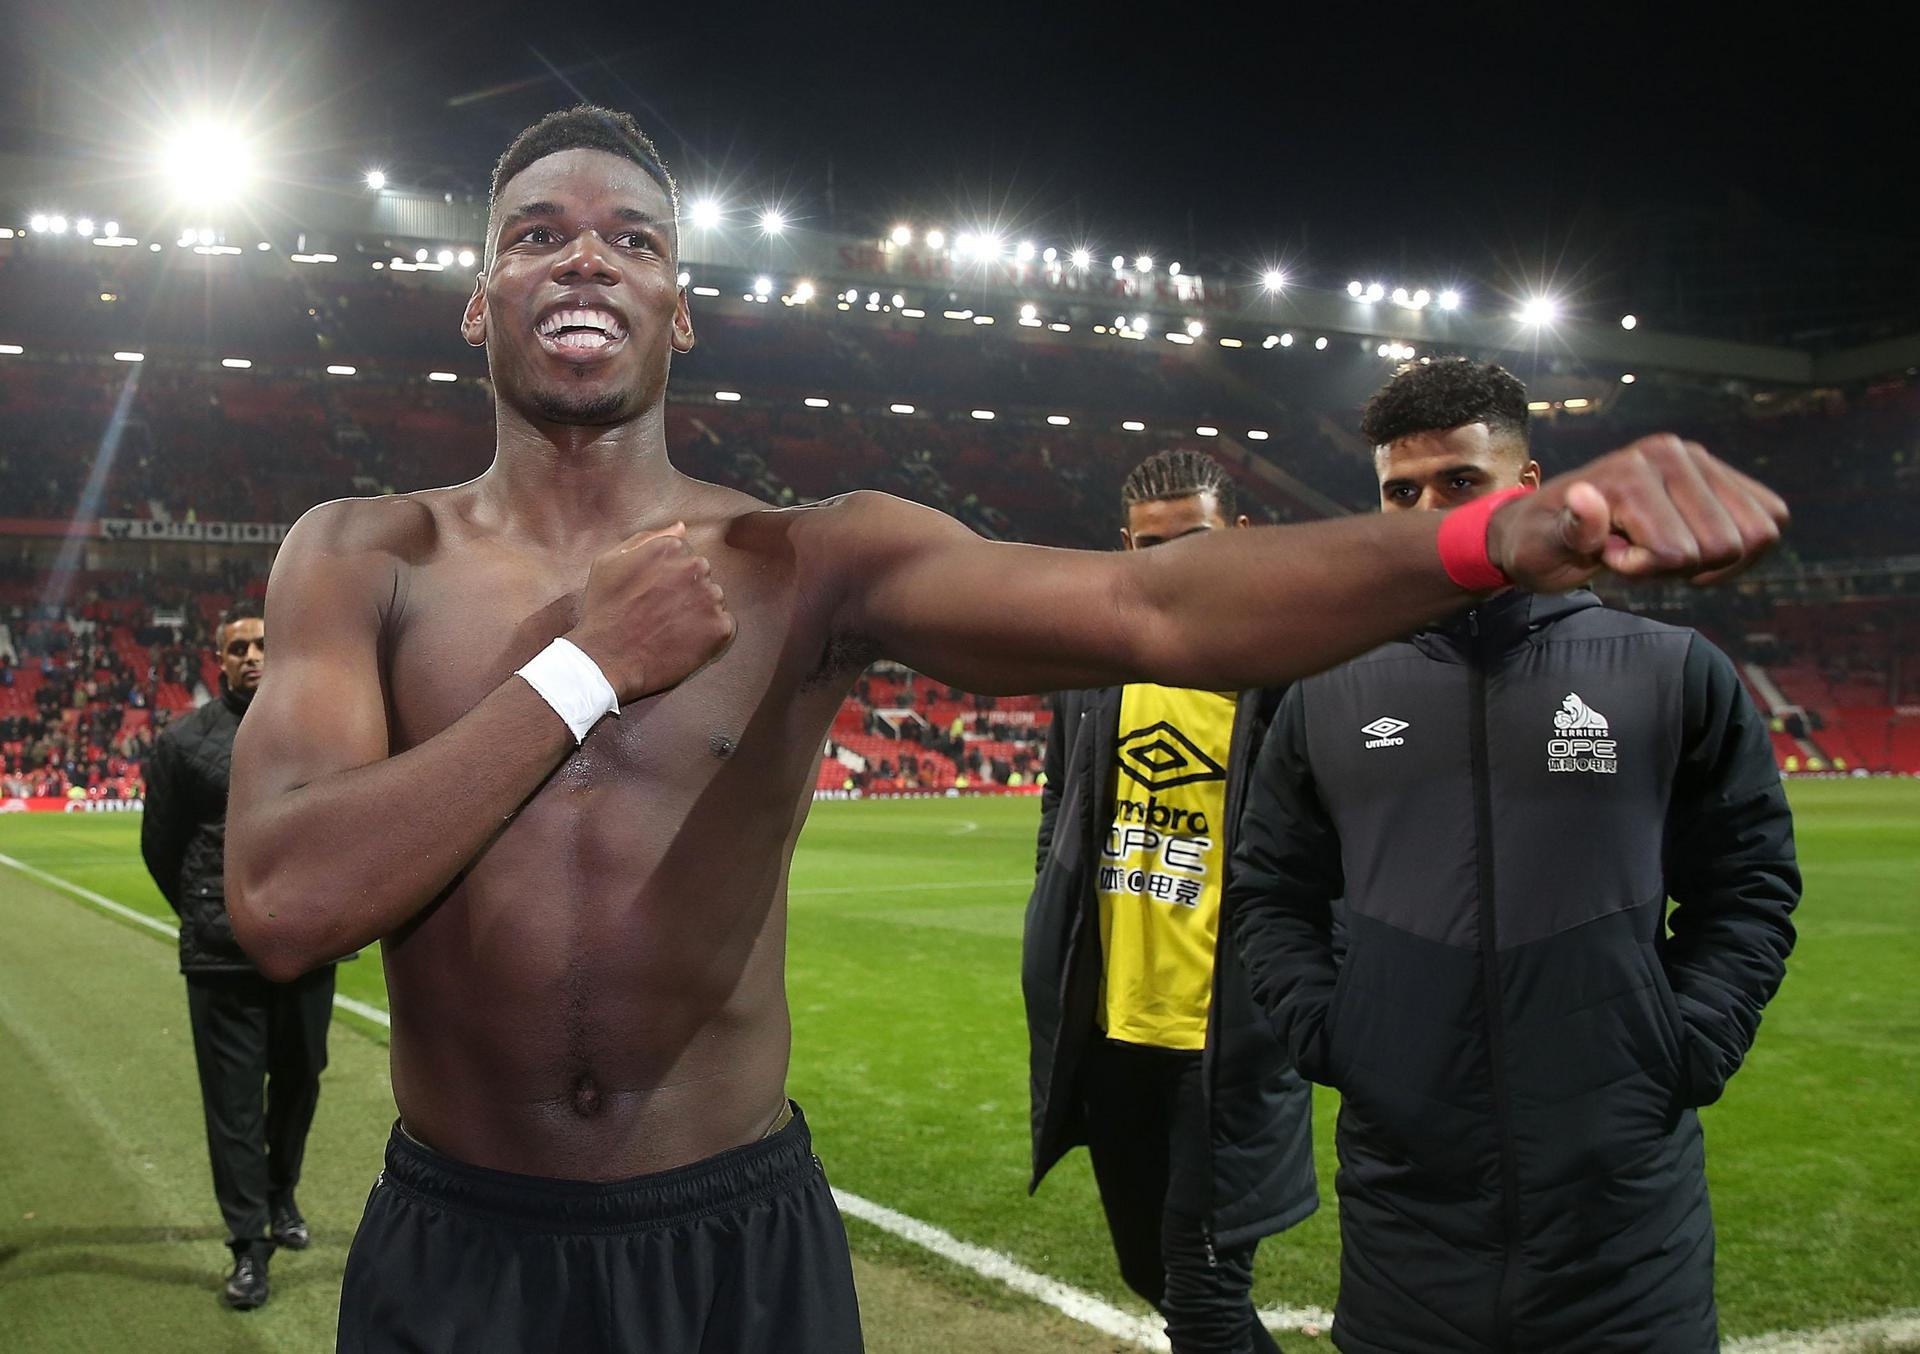 Paul Pogba bares his chest after the final whistle.